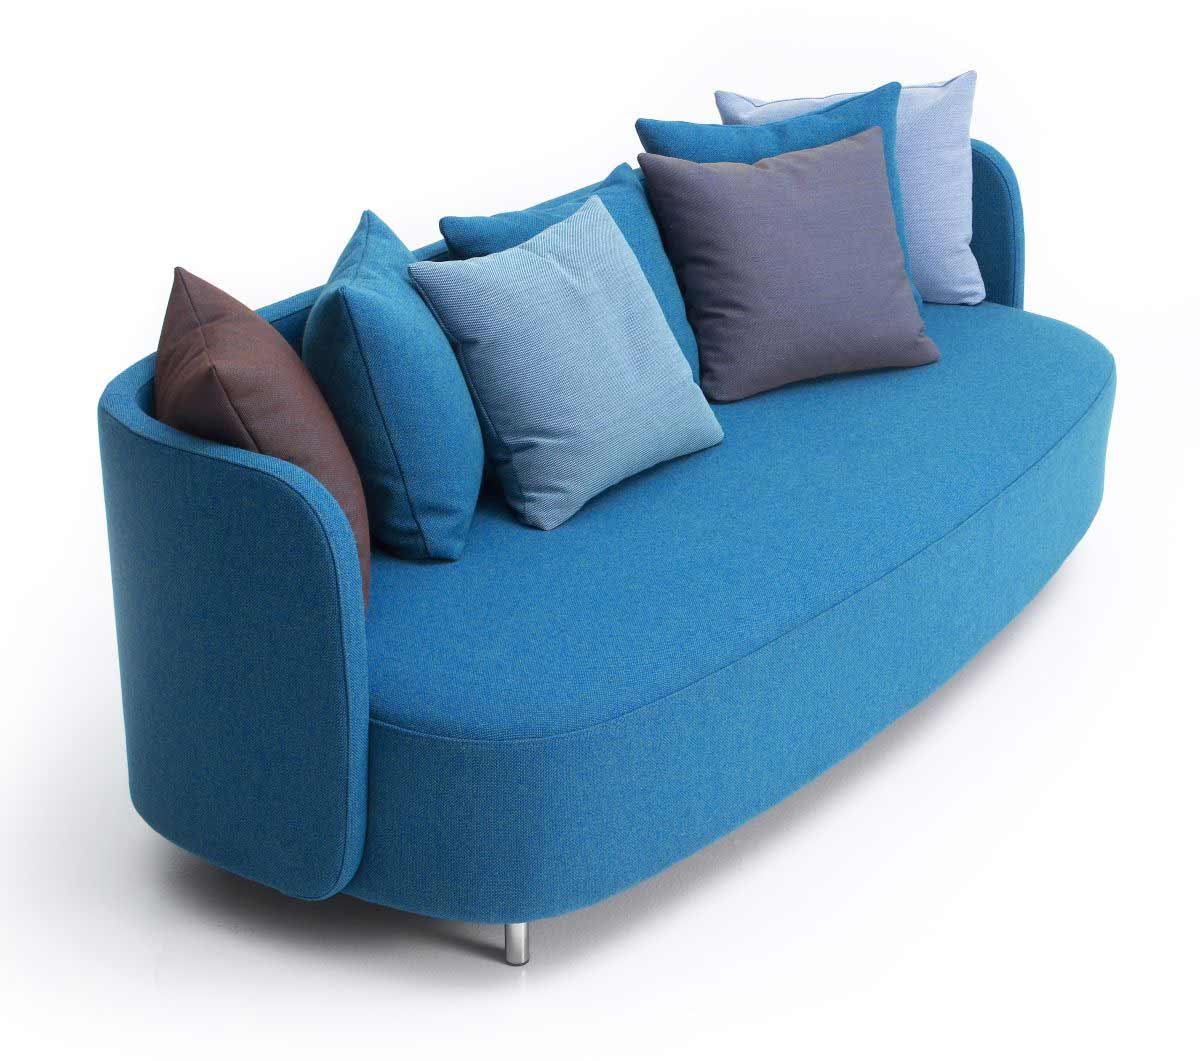 Blue leather couches feel the home Unique loveseats